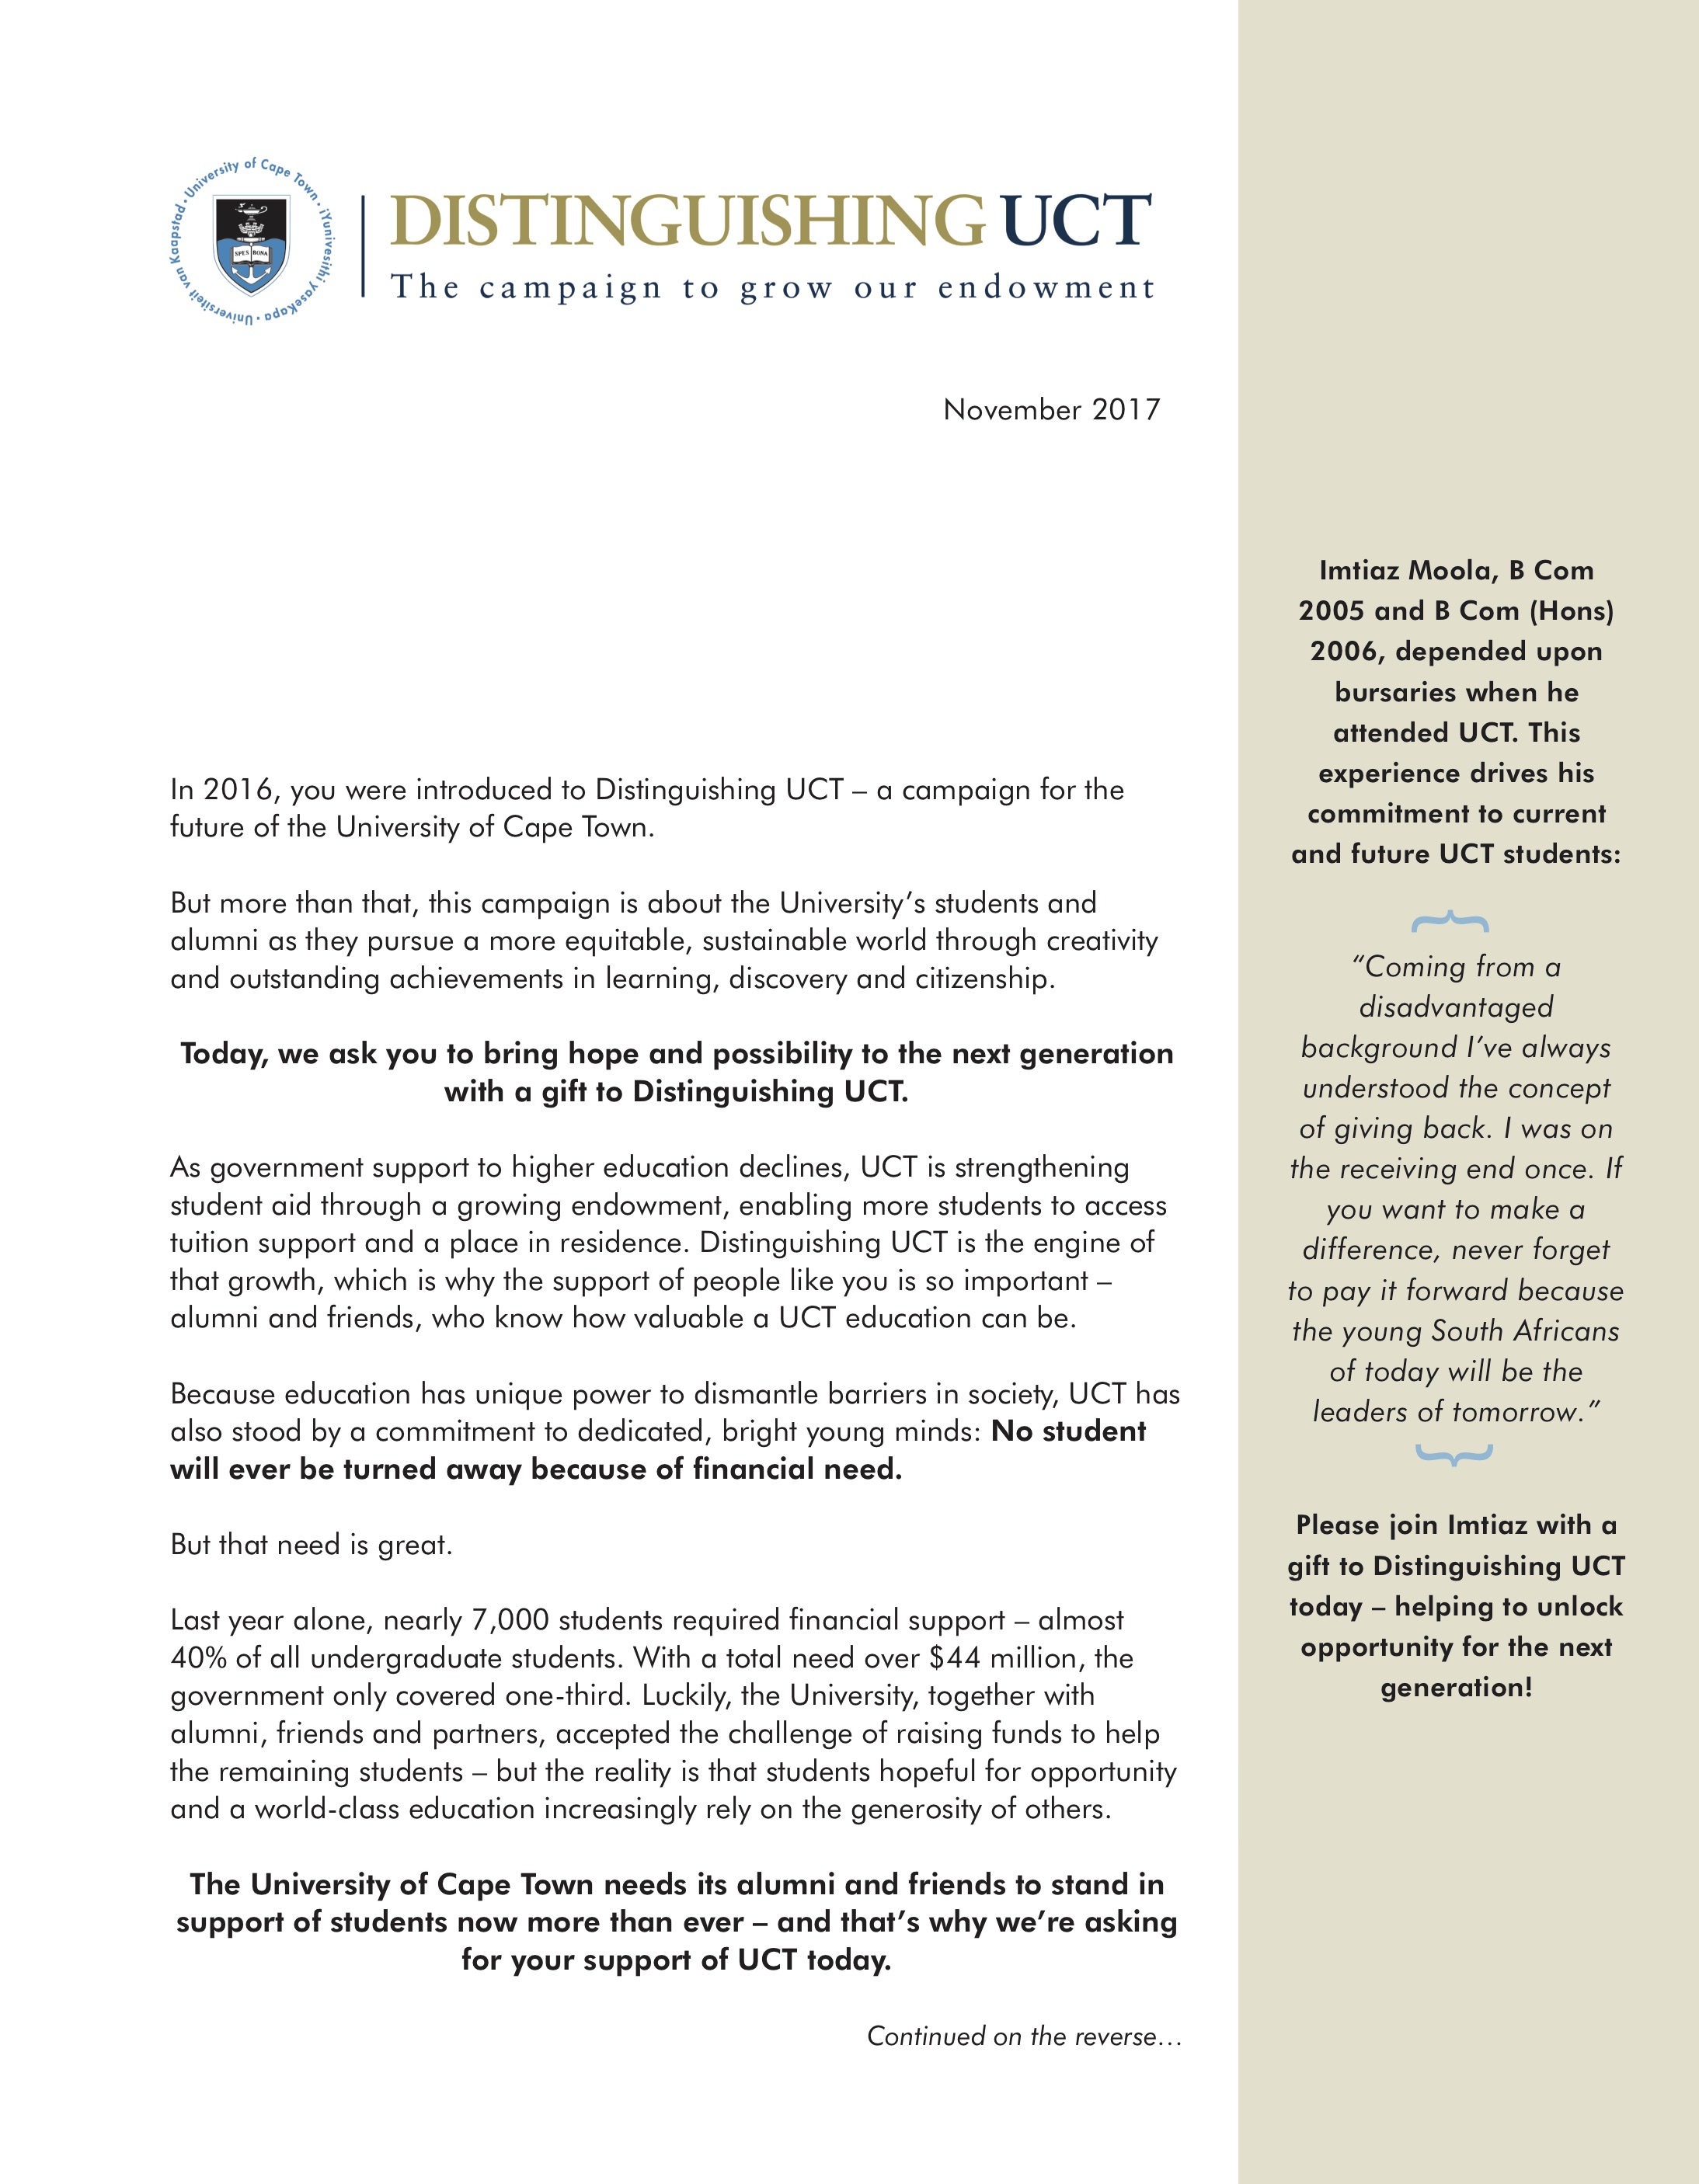 uctfund_2017-appeal-letter-p1